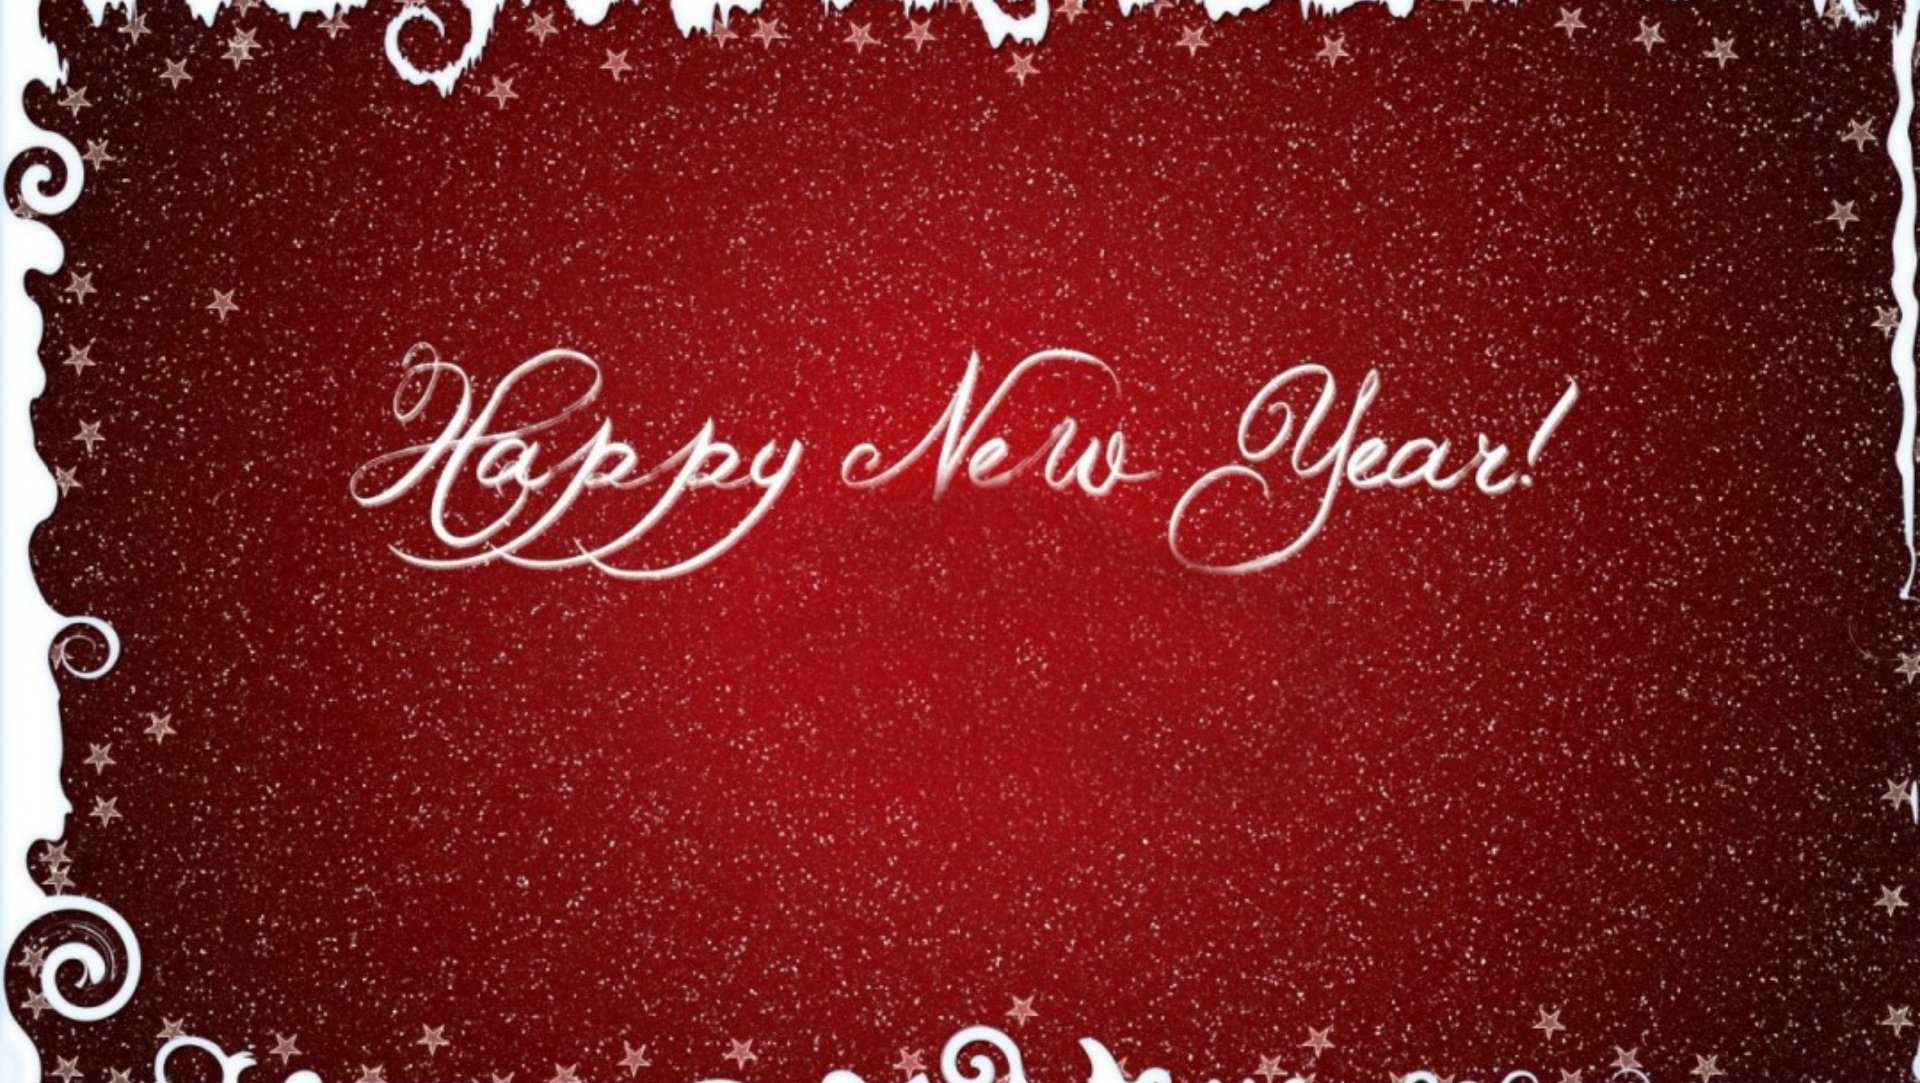 New Year Images Wallpaper And Facebook Cover Photos Happy Wishes